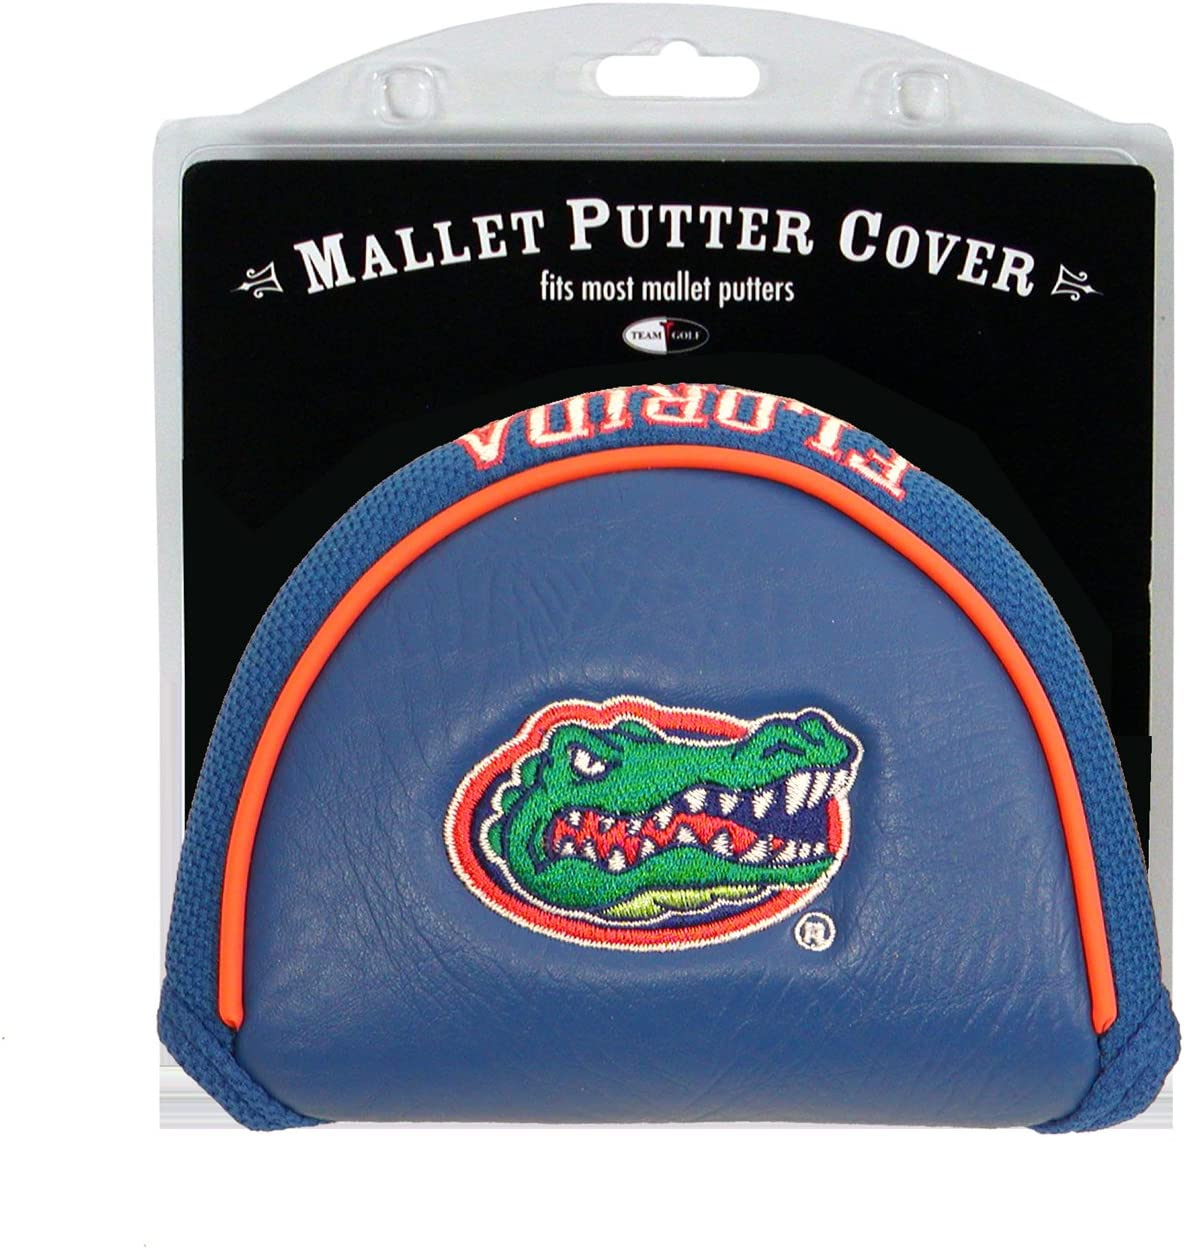 Team Golf NCAA Golf Club Mallet Putter Headcover, Fits Most Mallet Putters, Scotty Cameron, Daddy Long Legs, Taylormade, Odyssey, Titleist, Ping, Callaway, Florida Gators : Golf Club Head Covers : Sports & Outdoors